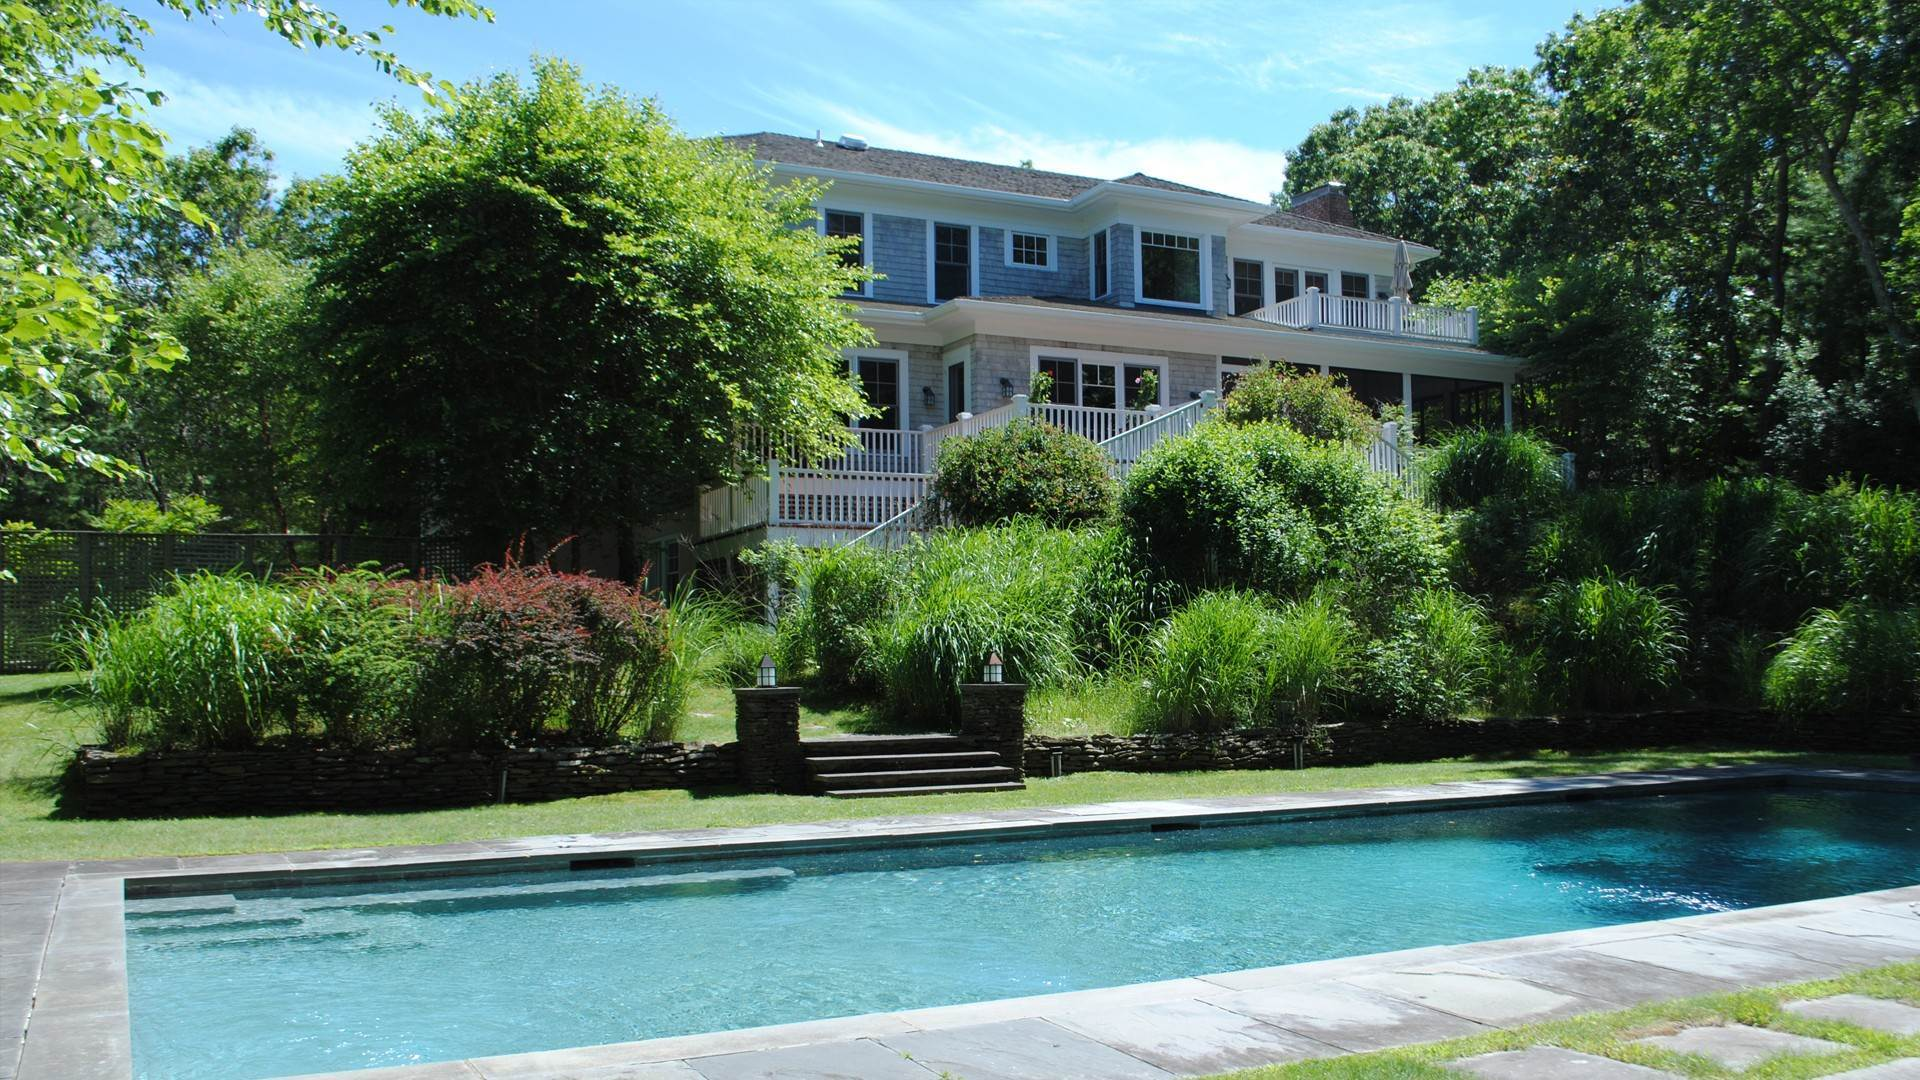 Single Family Home at East Hampton Bull Path 2021 East Hampton, NY 11937